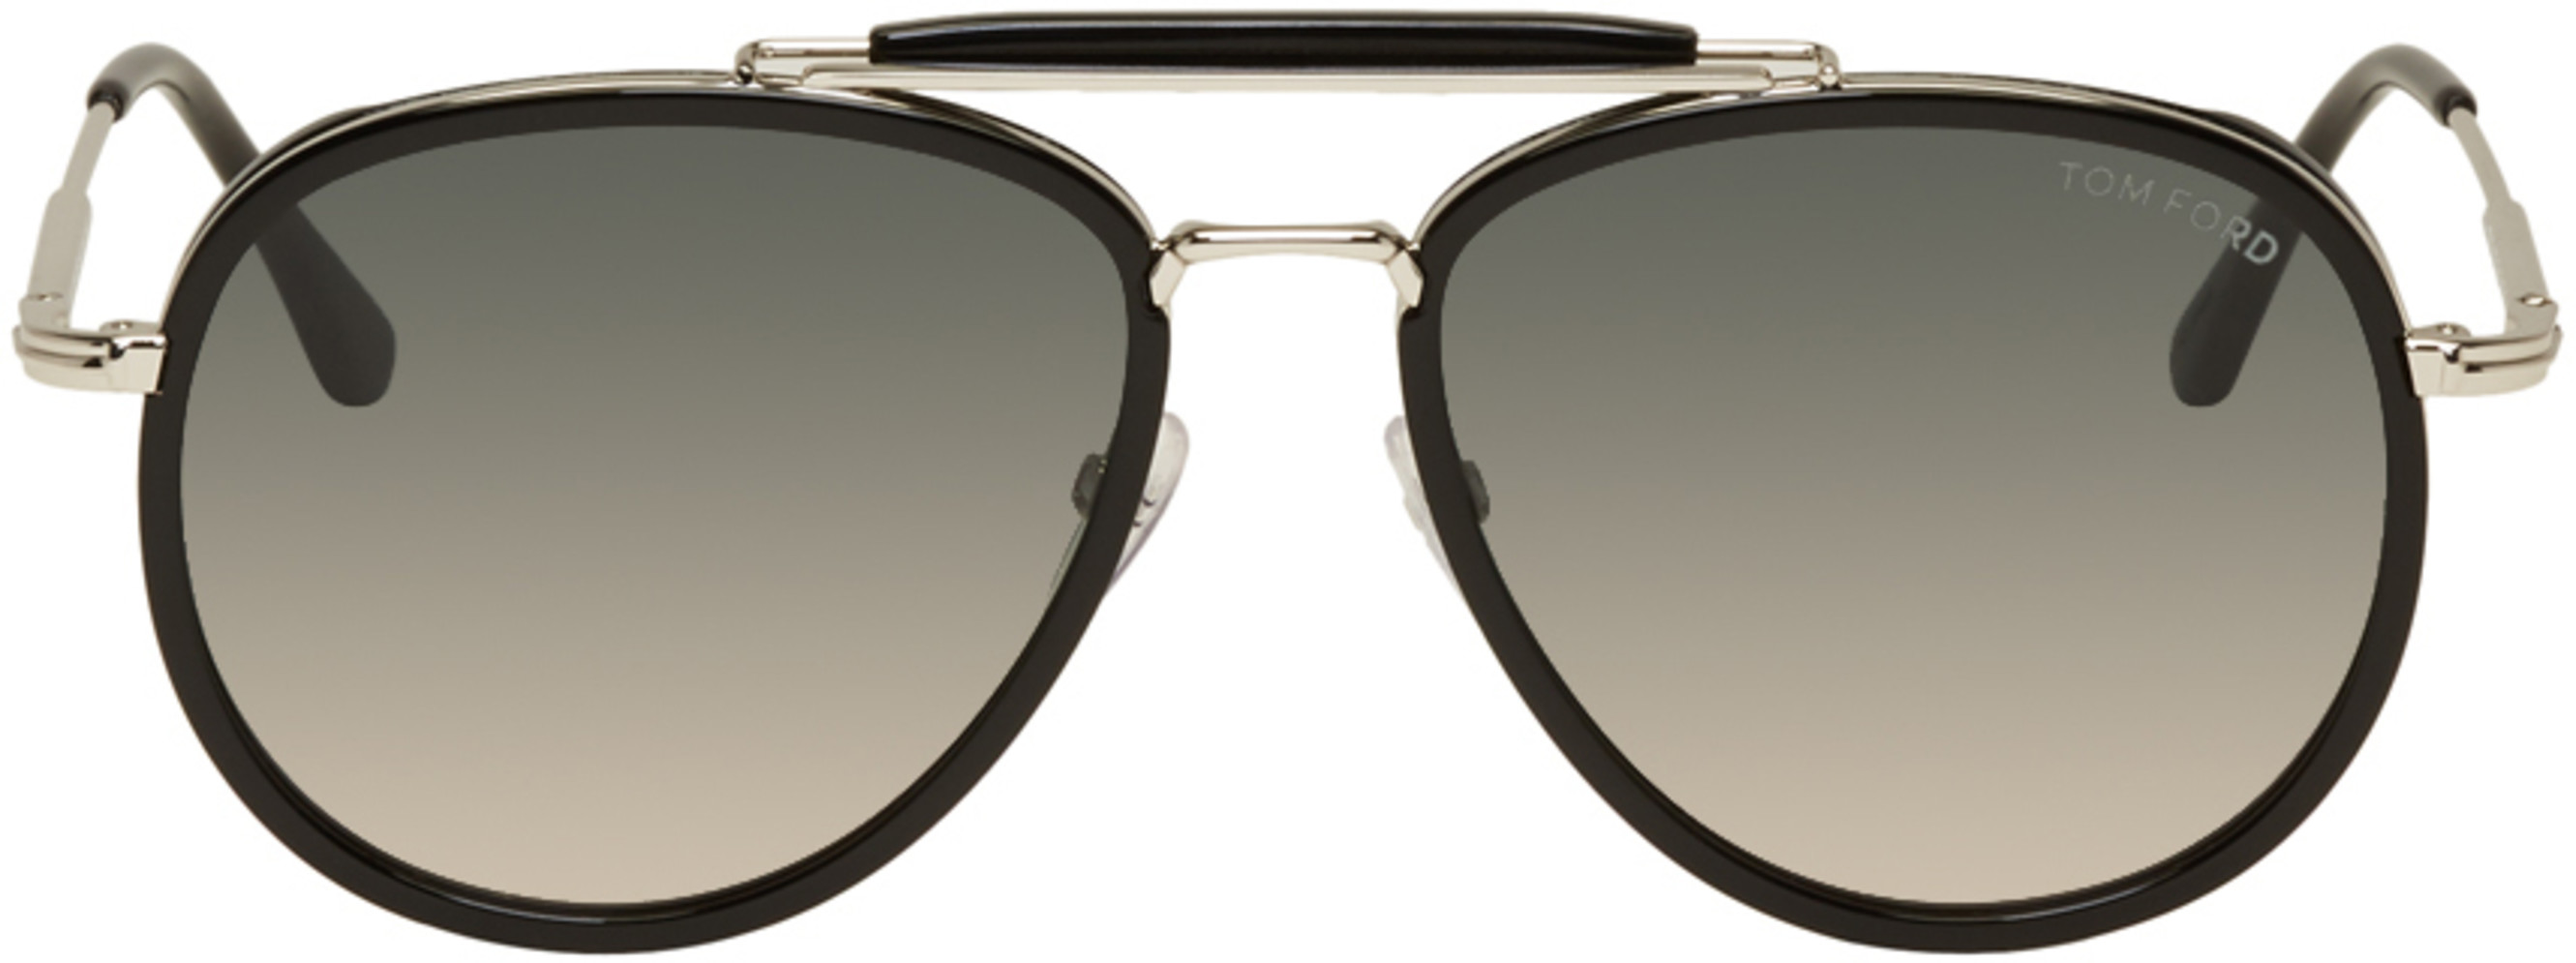 65462295b1 Tom Ford for Men SS19 Collection